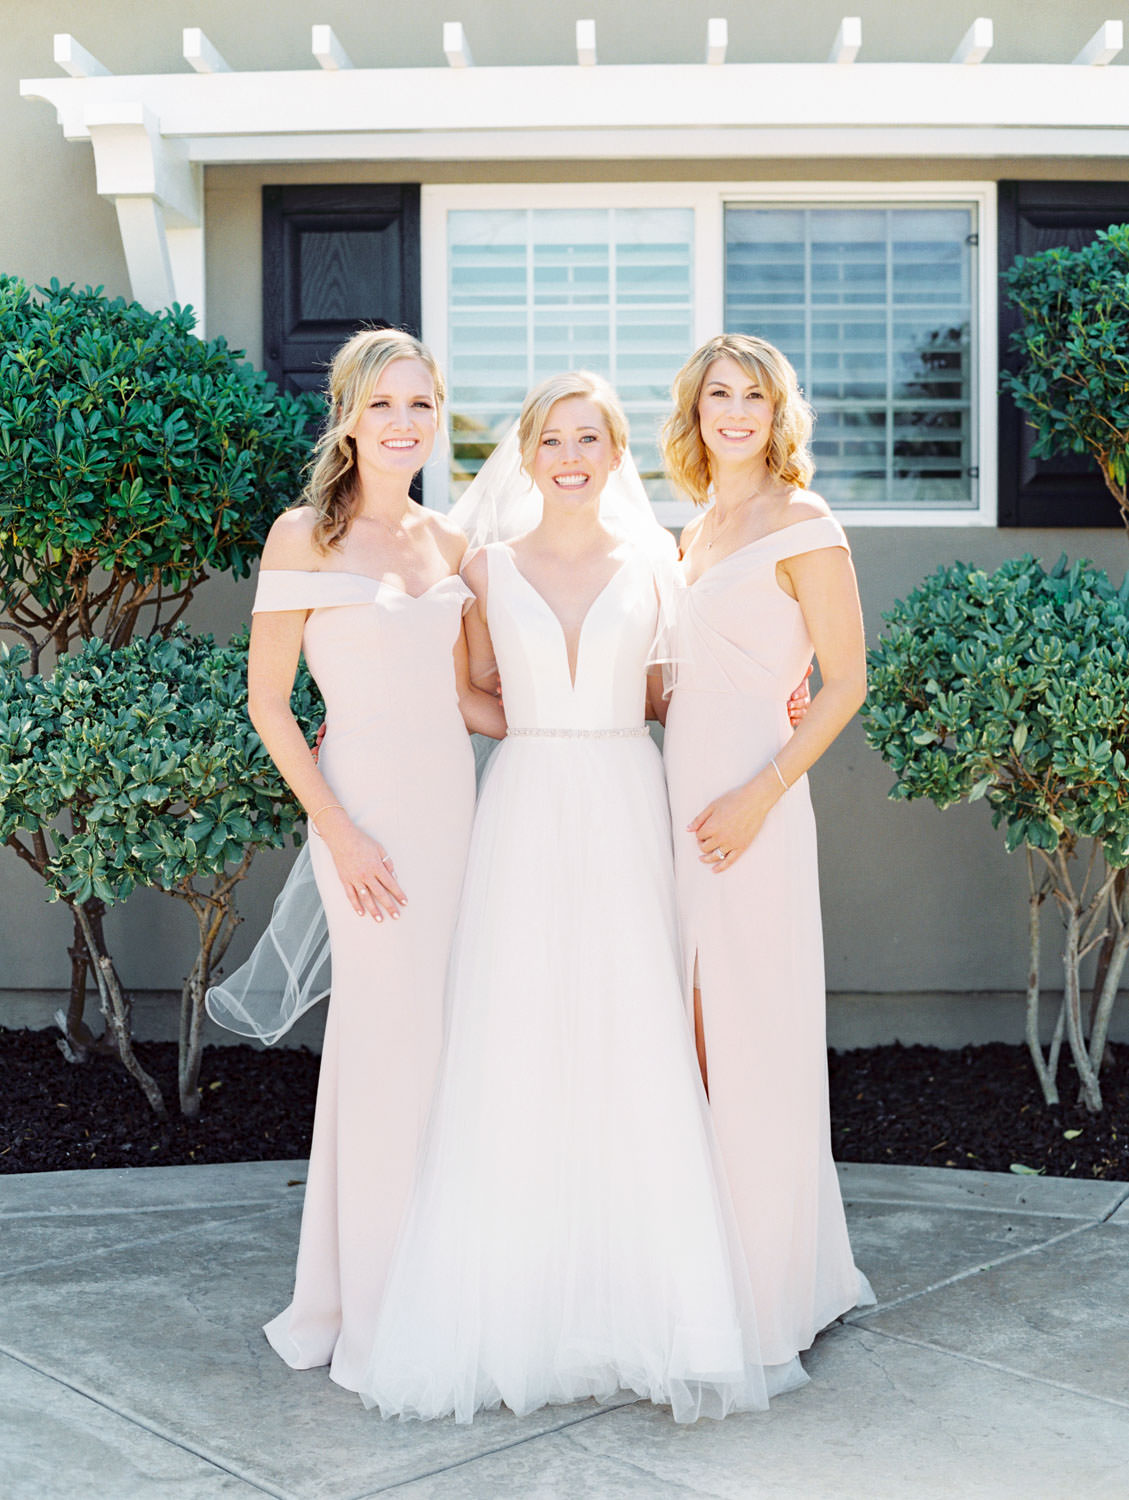 Bride in Stella York gown and veil for a classic bridal portrait with her bridesmaids in blush off shoulder gowns. San Diego wedding shot on film by Cavin Elizabeth Photography